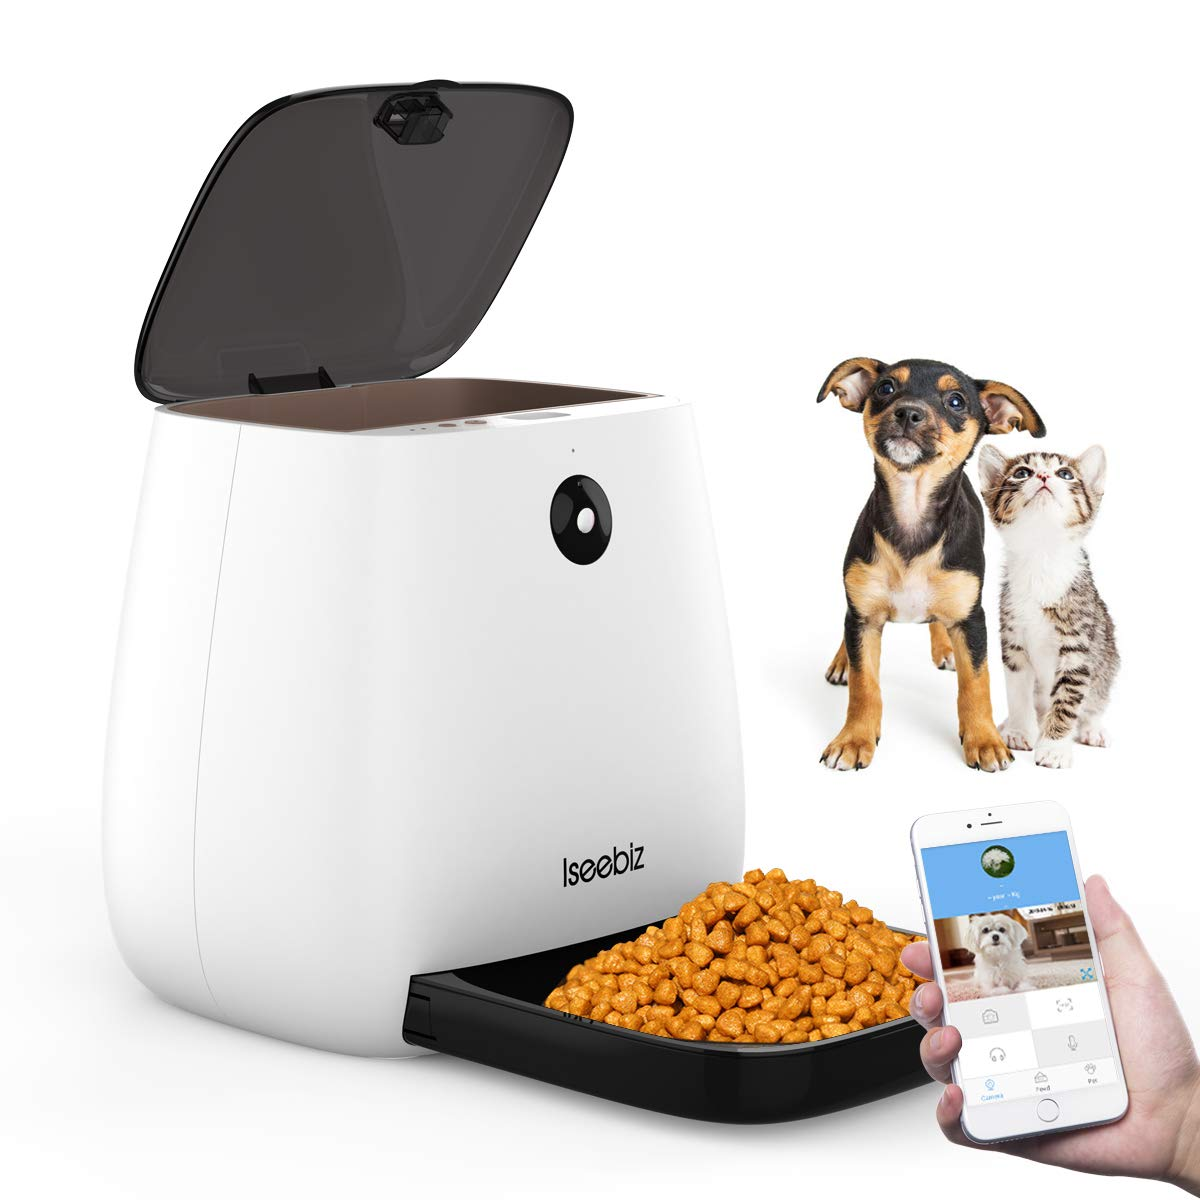 Iseebiz Smart Pet Feeder with 1080P Camera, 3.3L Automatic Cat Dog Feeder, App Control, Food Weighing, Auto Video Record, 2-Way Audio, 12 Meals a Day for Medium Small Cats Dogs, Compatible with Alexa